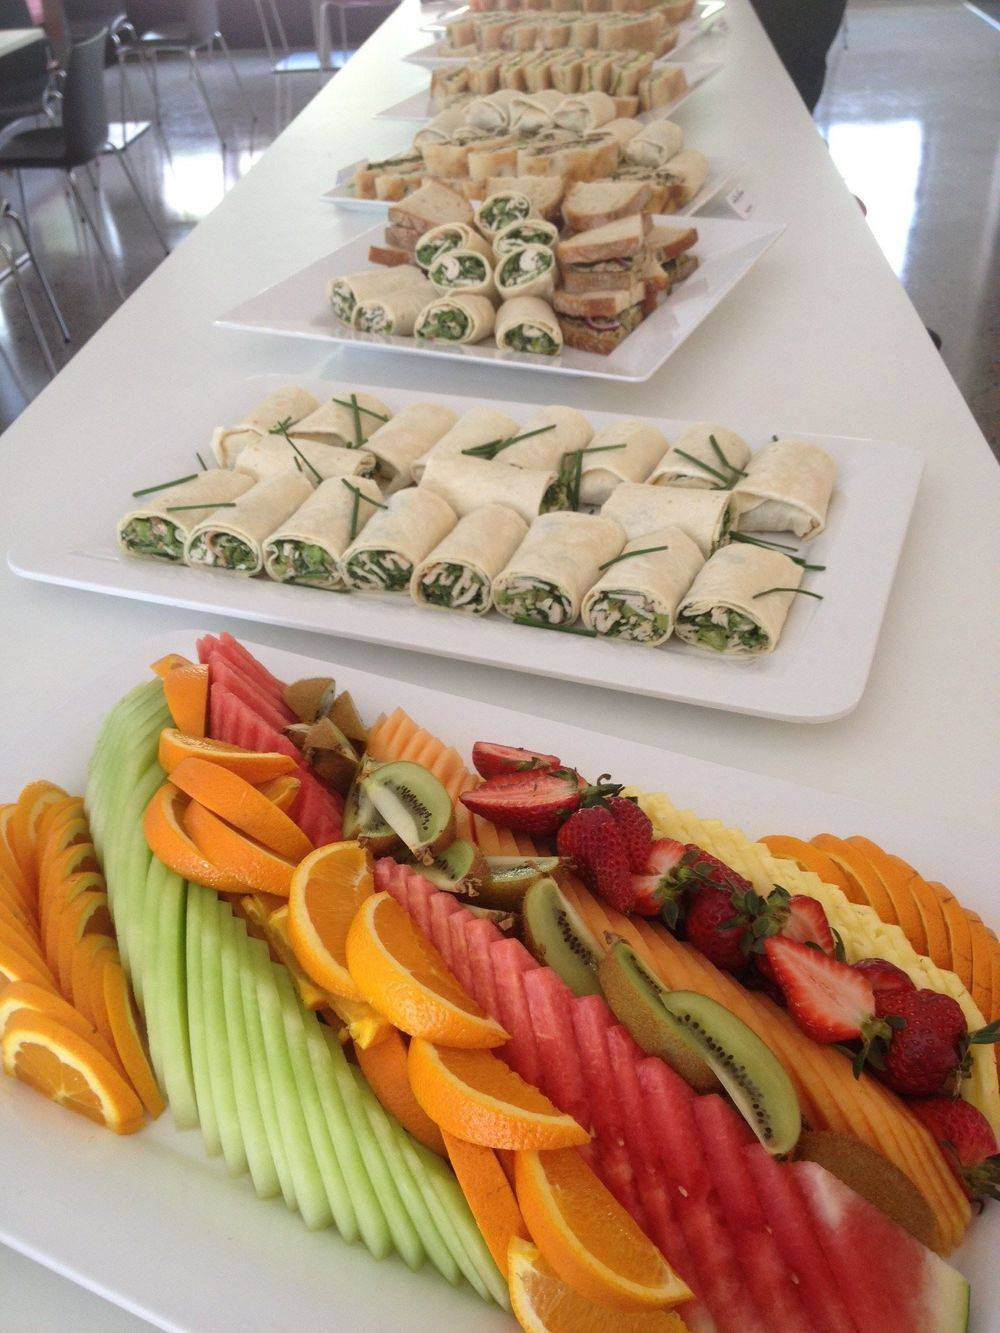 Healthy Lunch catering